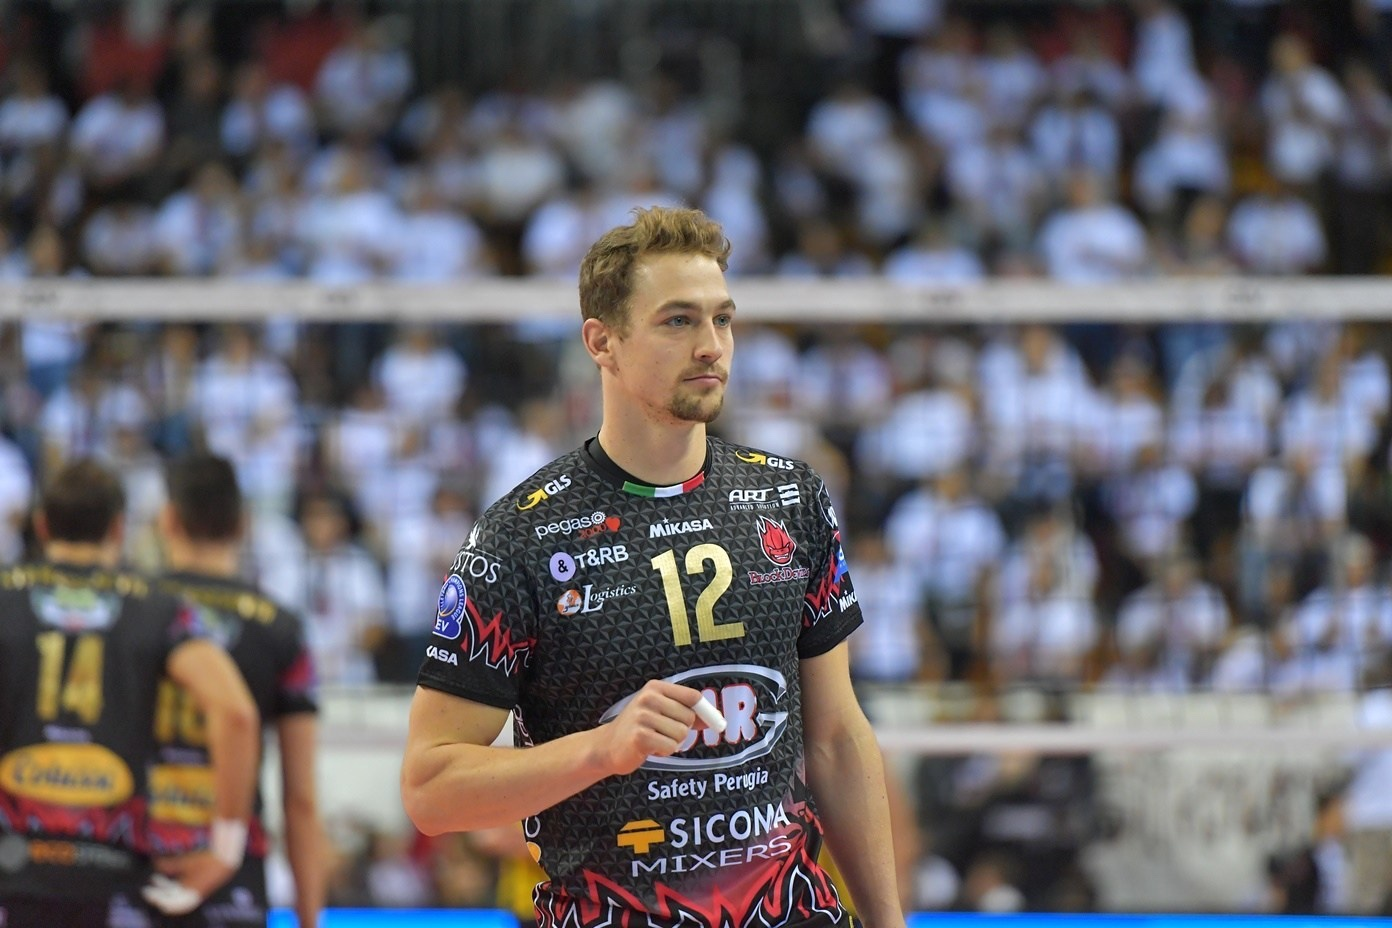 #Transfers: Ishikawa in Kioene Padova, Berger in Gas Sales Piacenza, Zhukouski to Perugia.